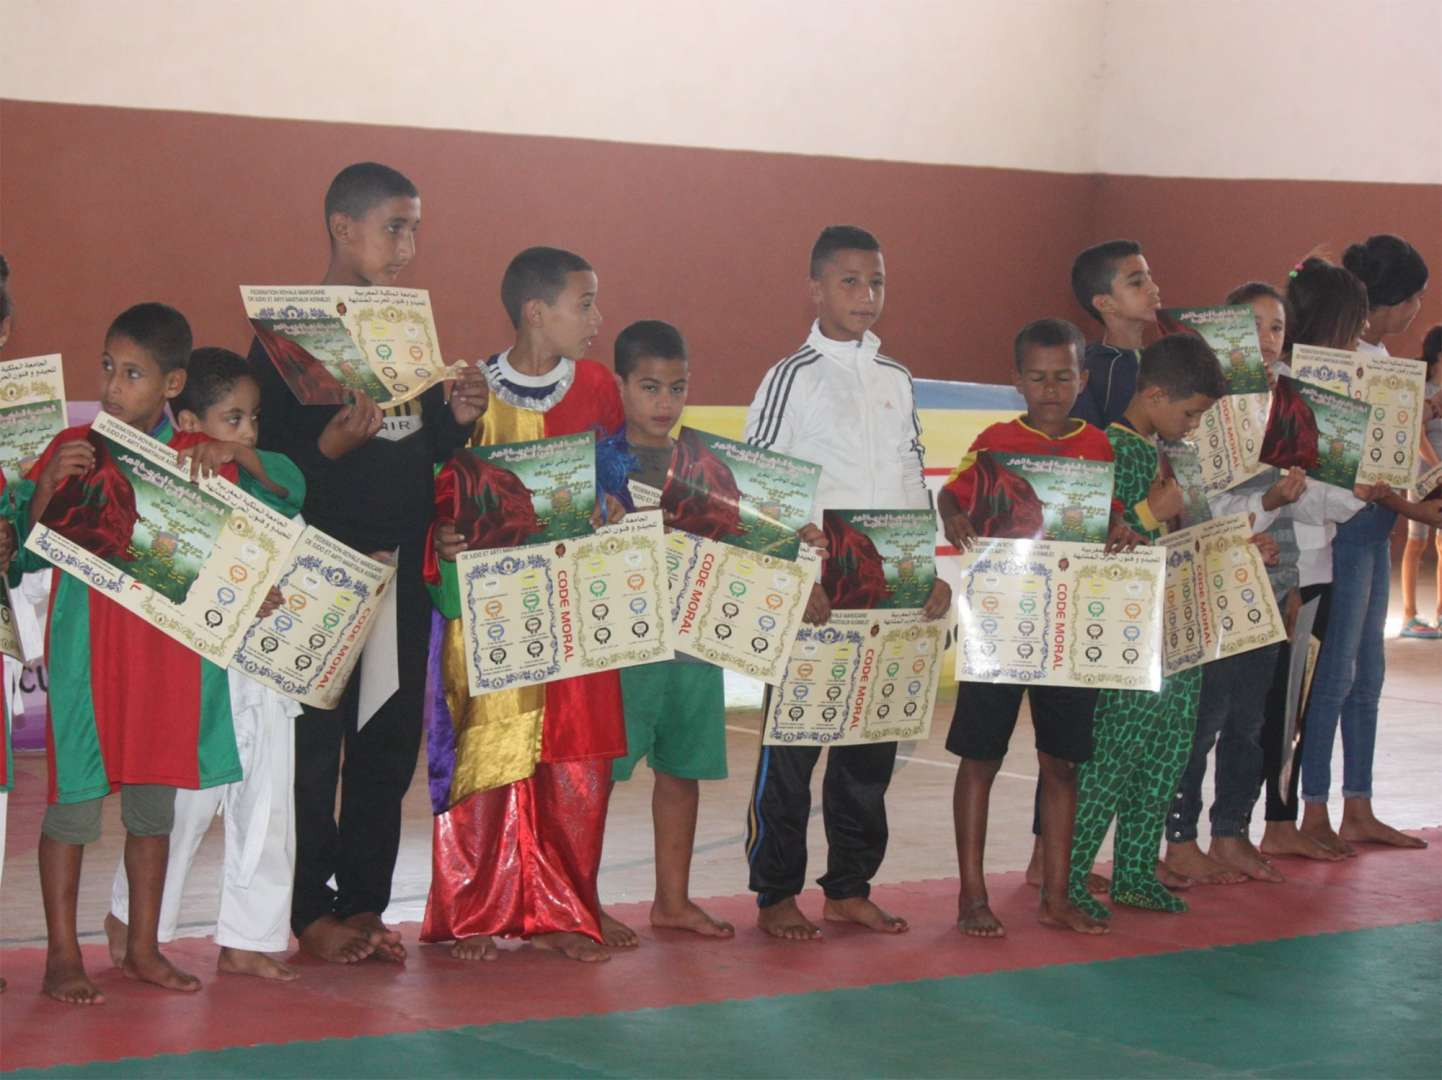 Moroccan Royal Federation of Judo introduce sport to child welfare centres